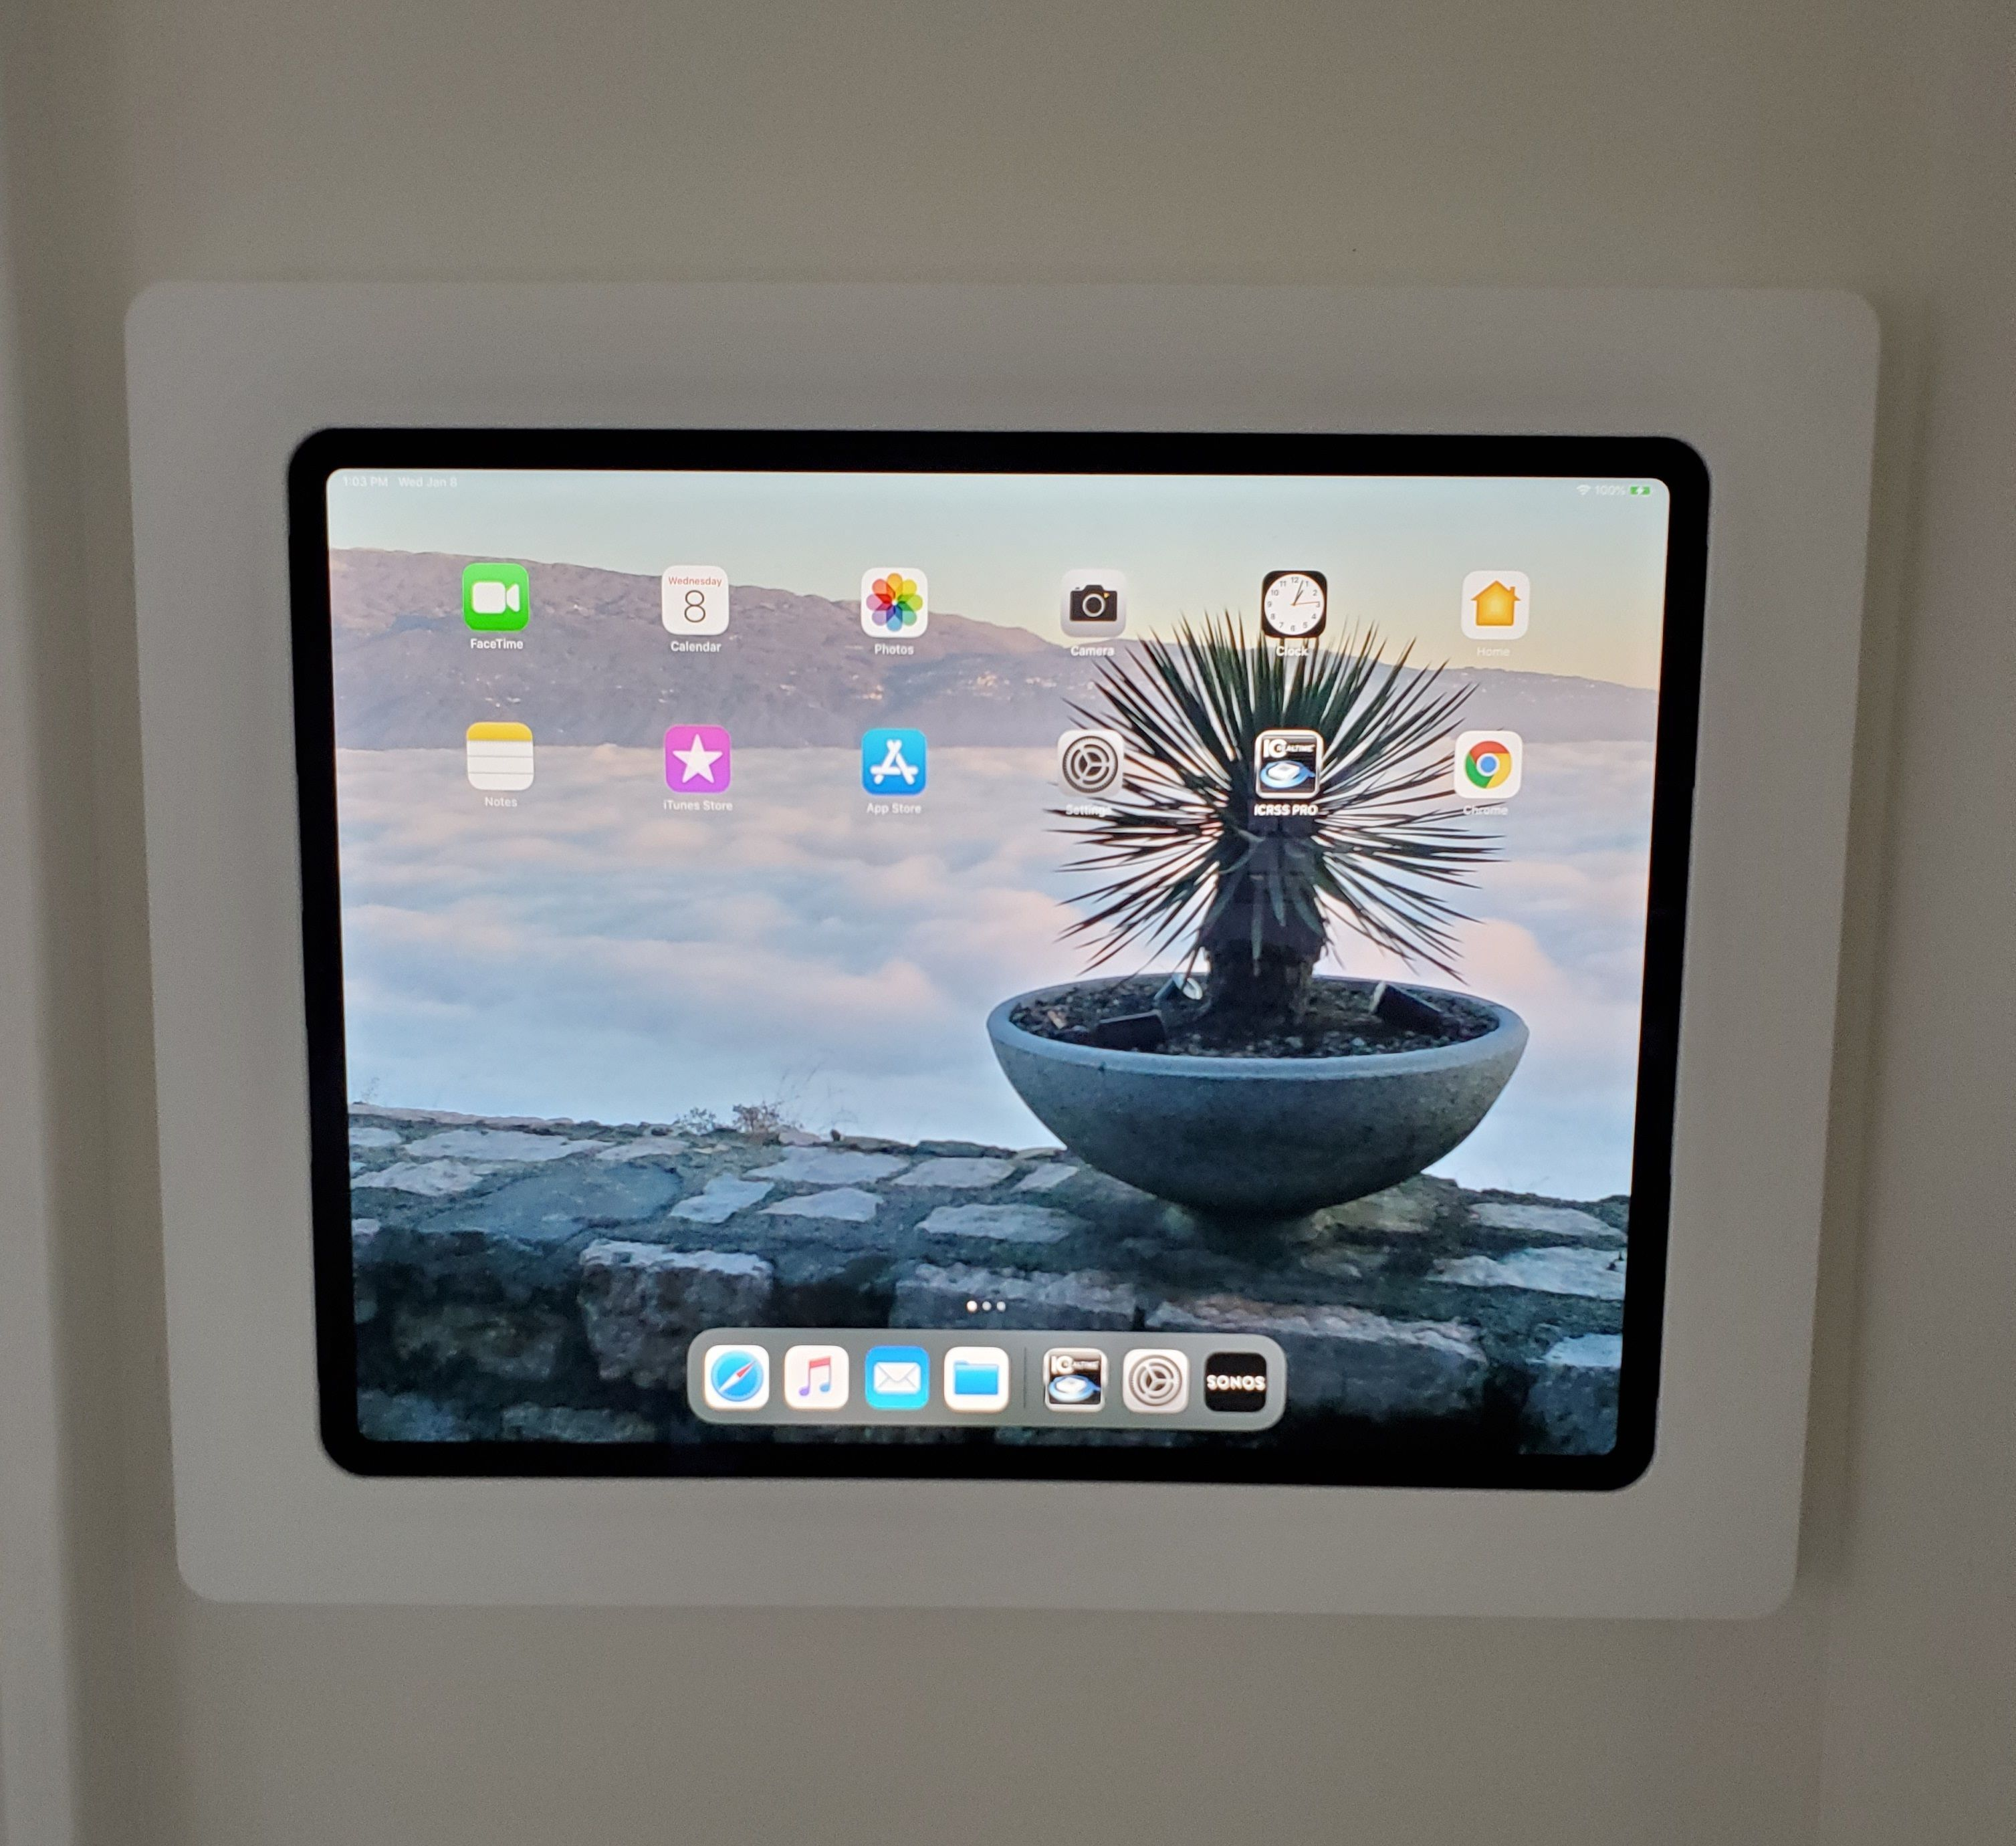 Have The New Ipad Pro 11 0 Or 12 9 We Have Enclosures For Those Too Come See More Of Our On Wall Mount For In 2020 Ipad Wall Mount Ipad Mount Smart Home Technology